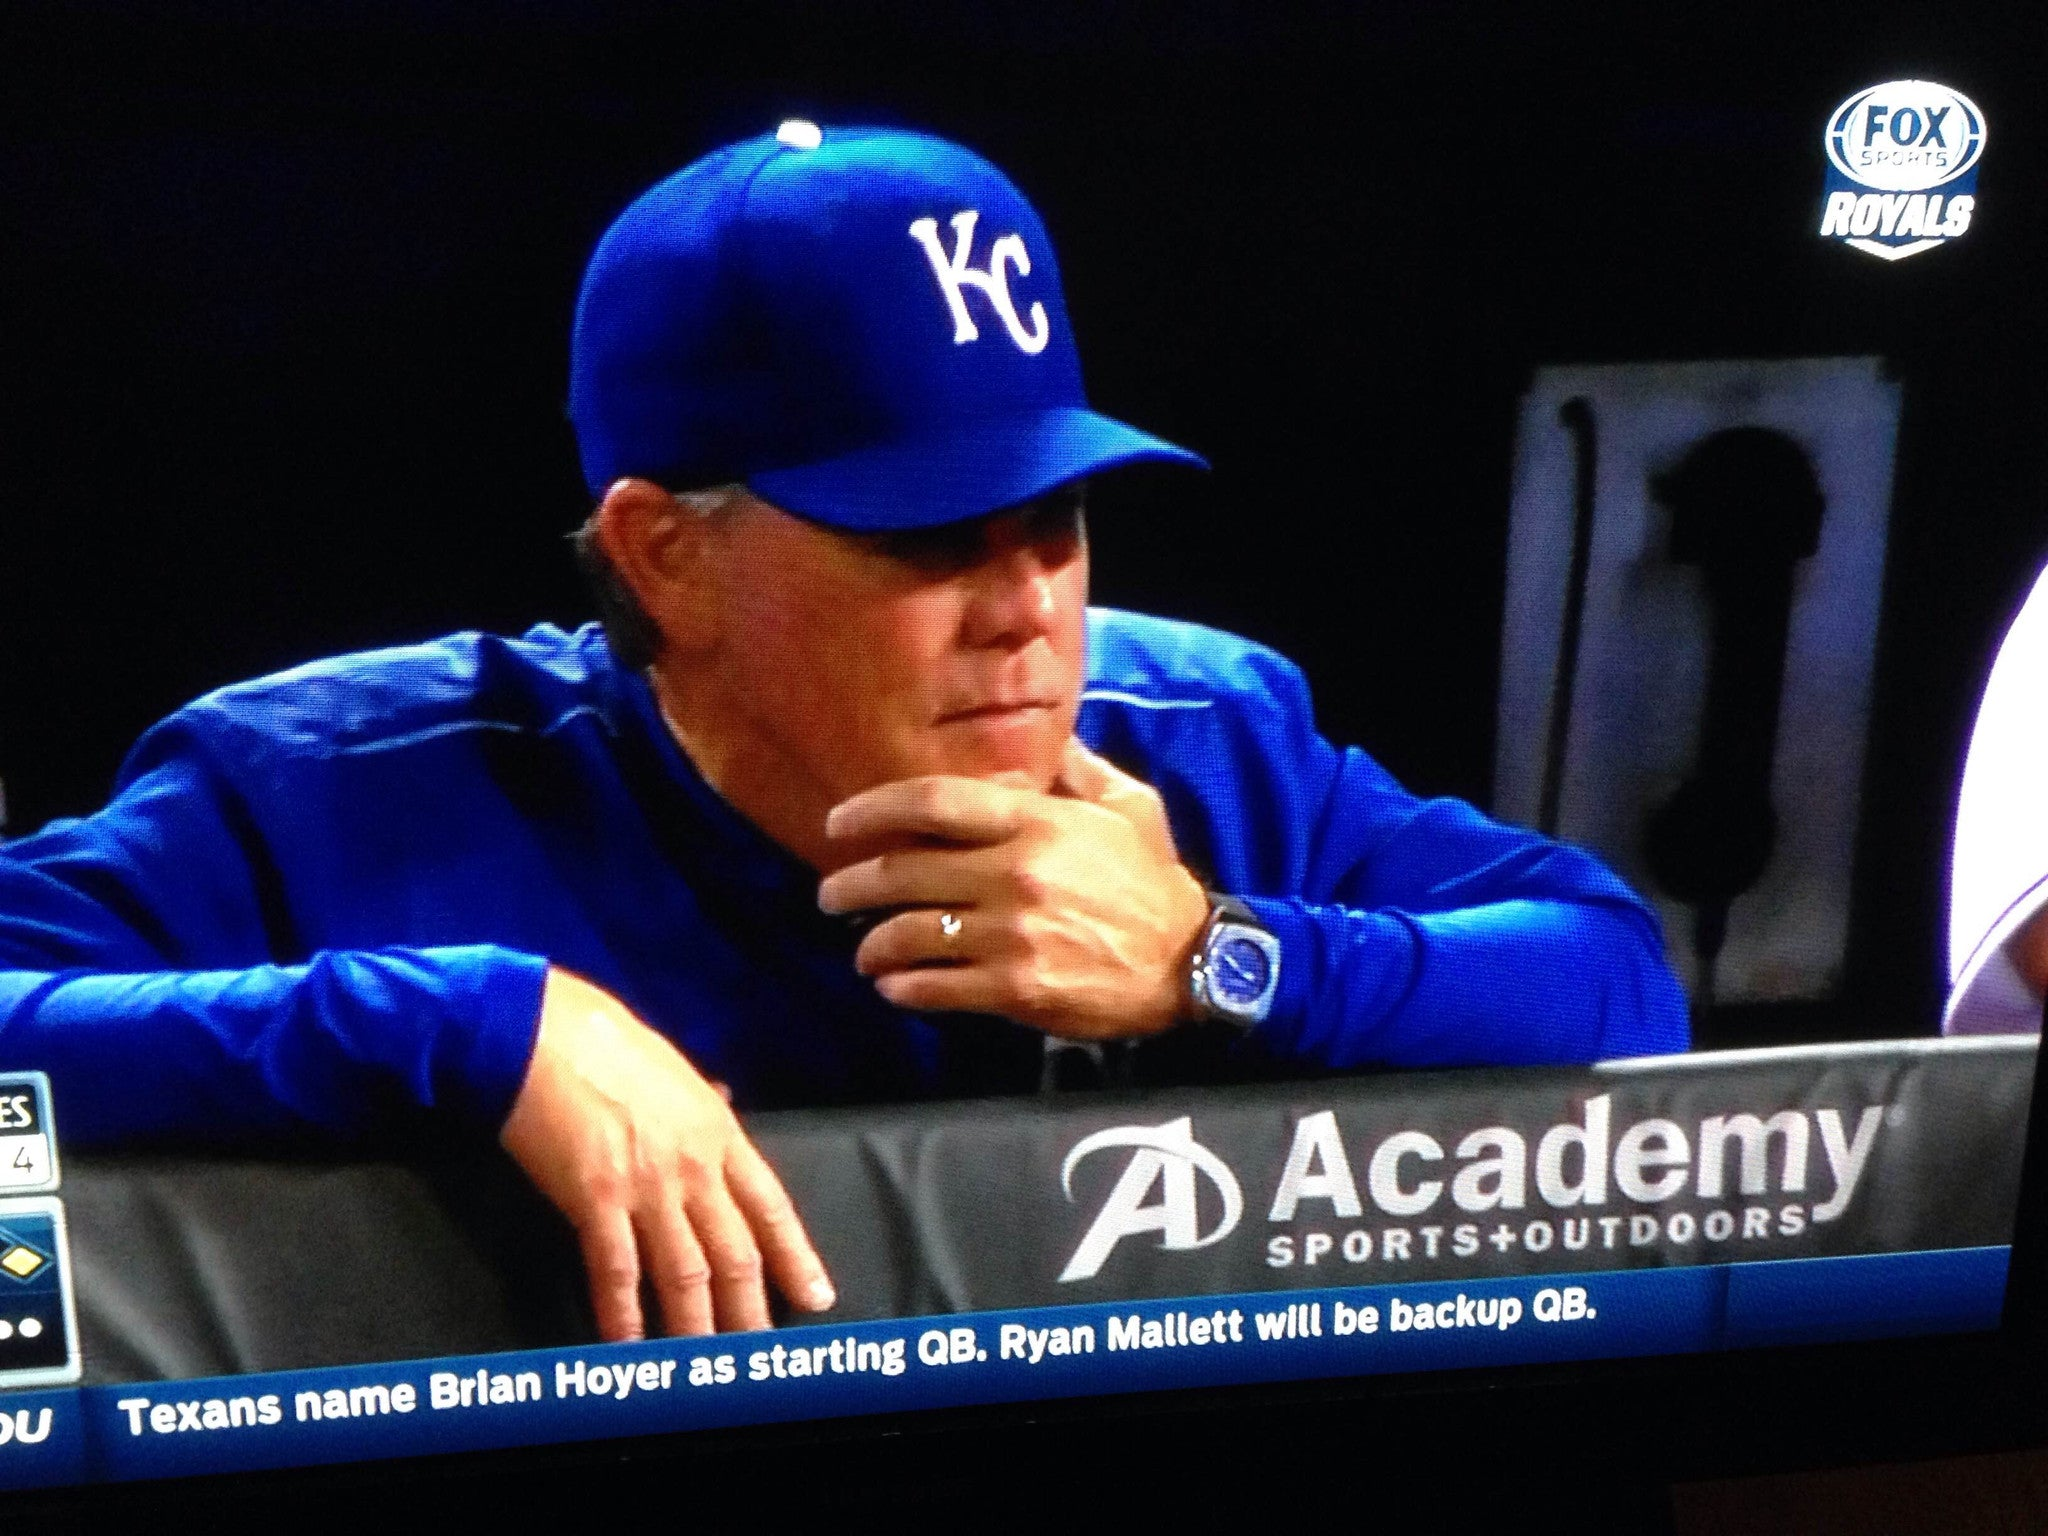 ROYALS' MANAGER NED YOST REPLACES APPLE WATCH WITH CUSTOM NIALL ONE.3